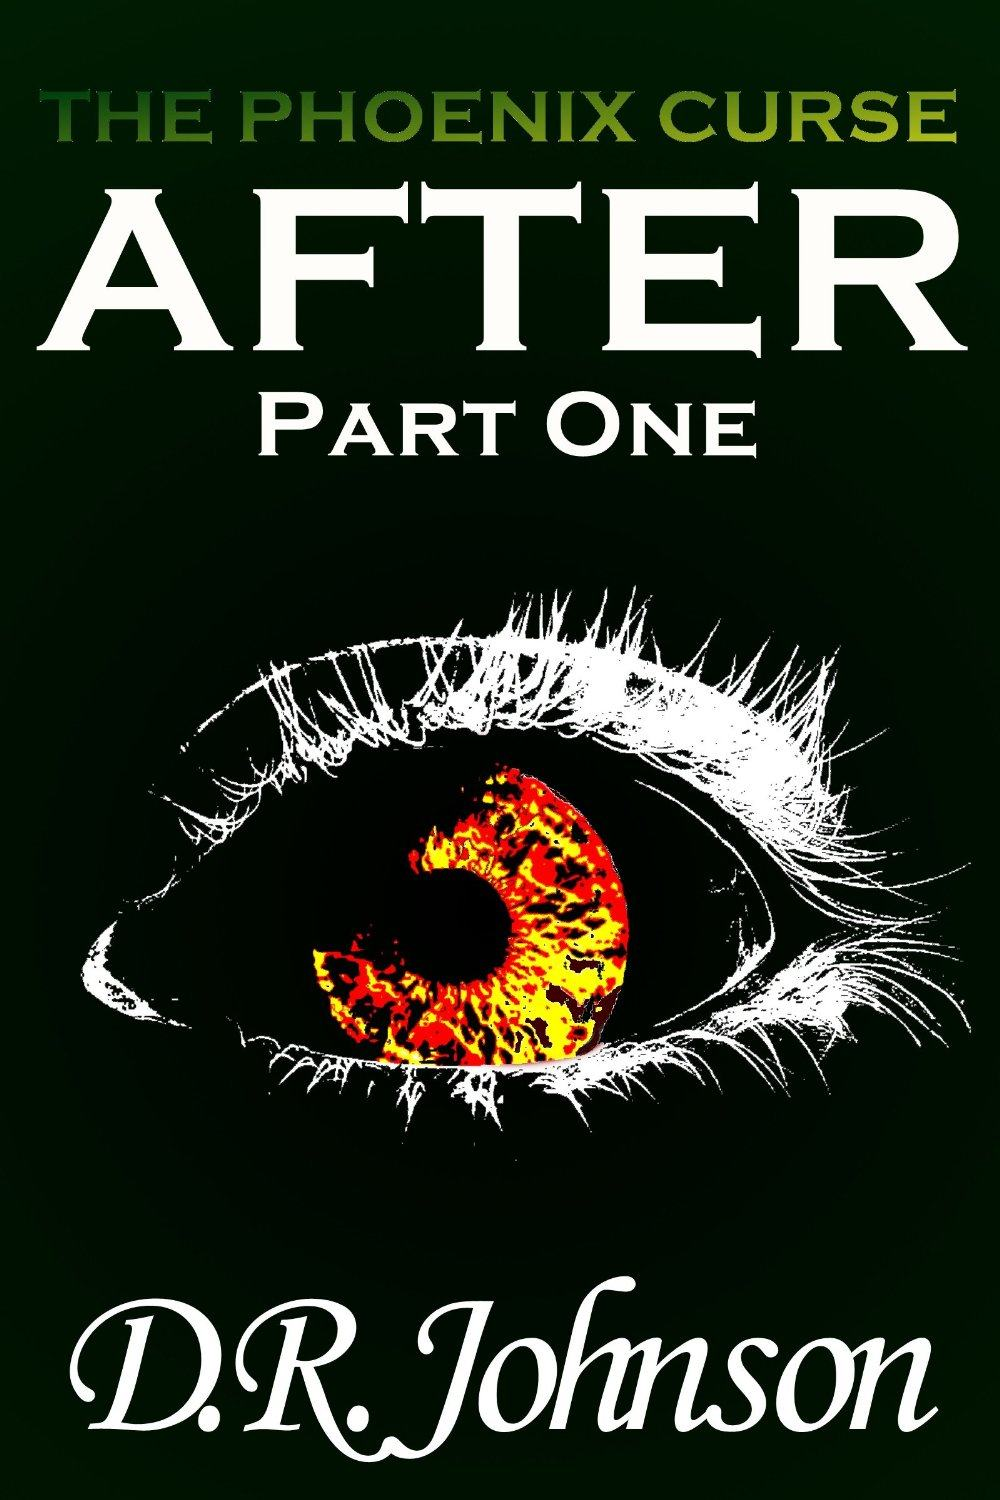 The Phoenix Curse: After, Part One by D. R. Johnson